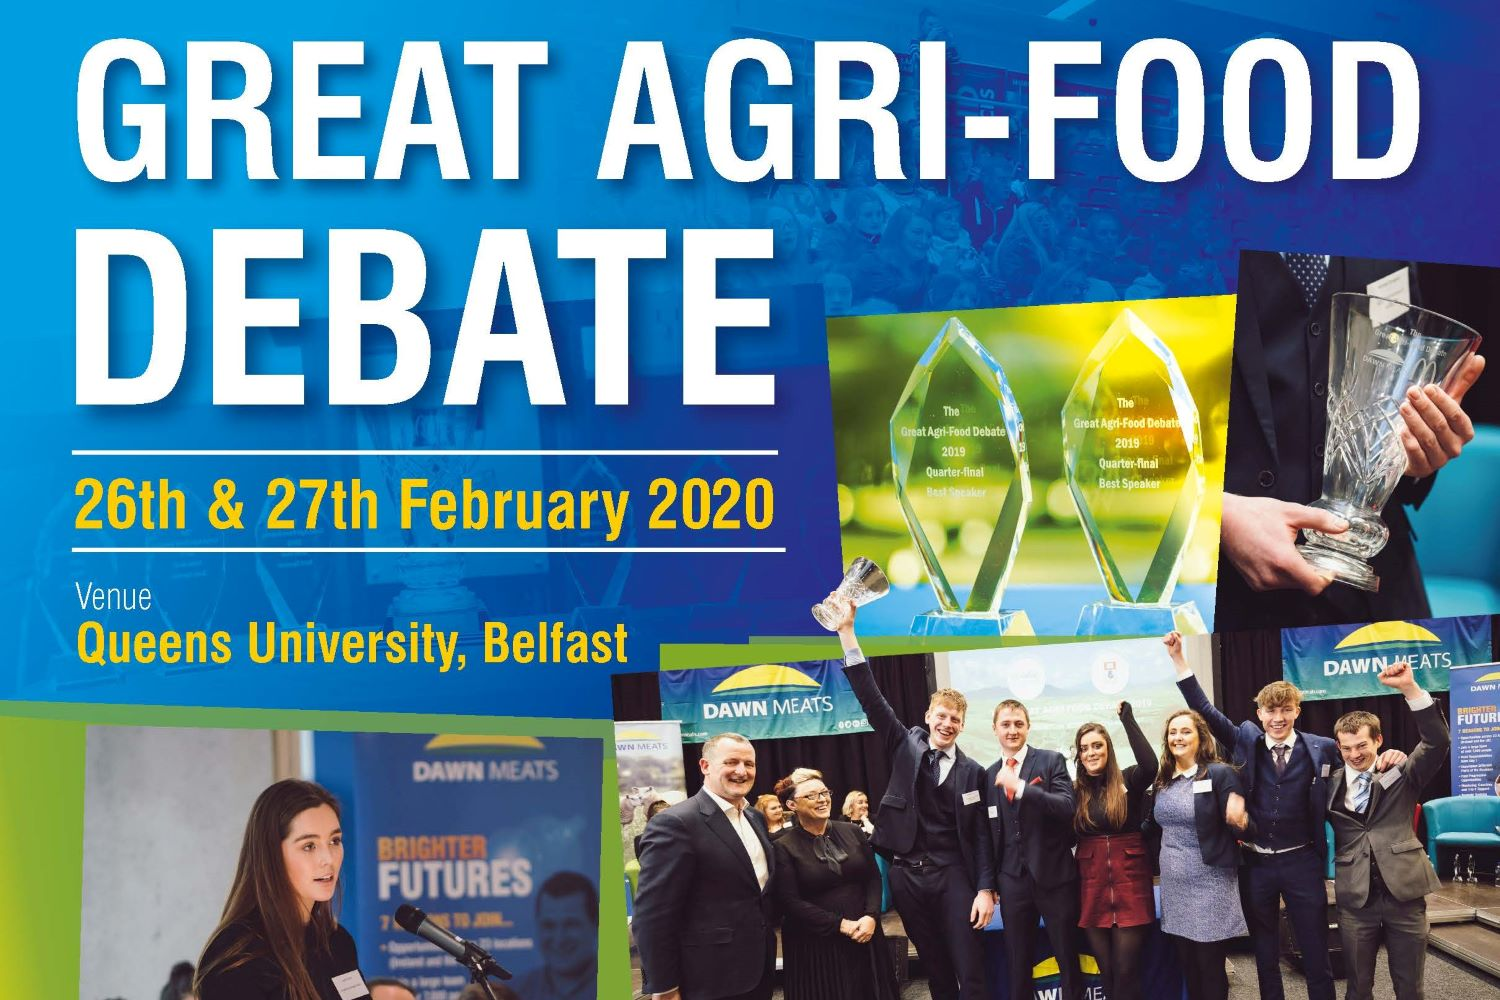 The Debate is a joint initiative between Dawn Meats & McDonald's and this is the first year the competition will be held in Northern Ireland, reflecting the importance of all-island dialogue in addressing some of biggest issues affecting farming today.